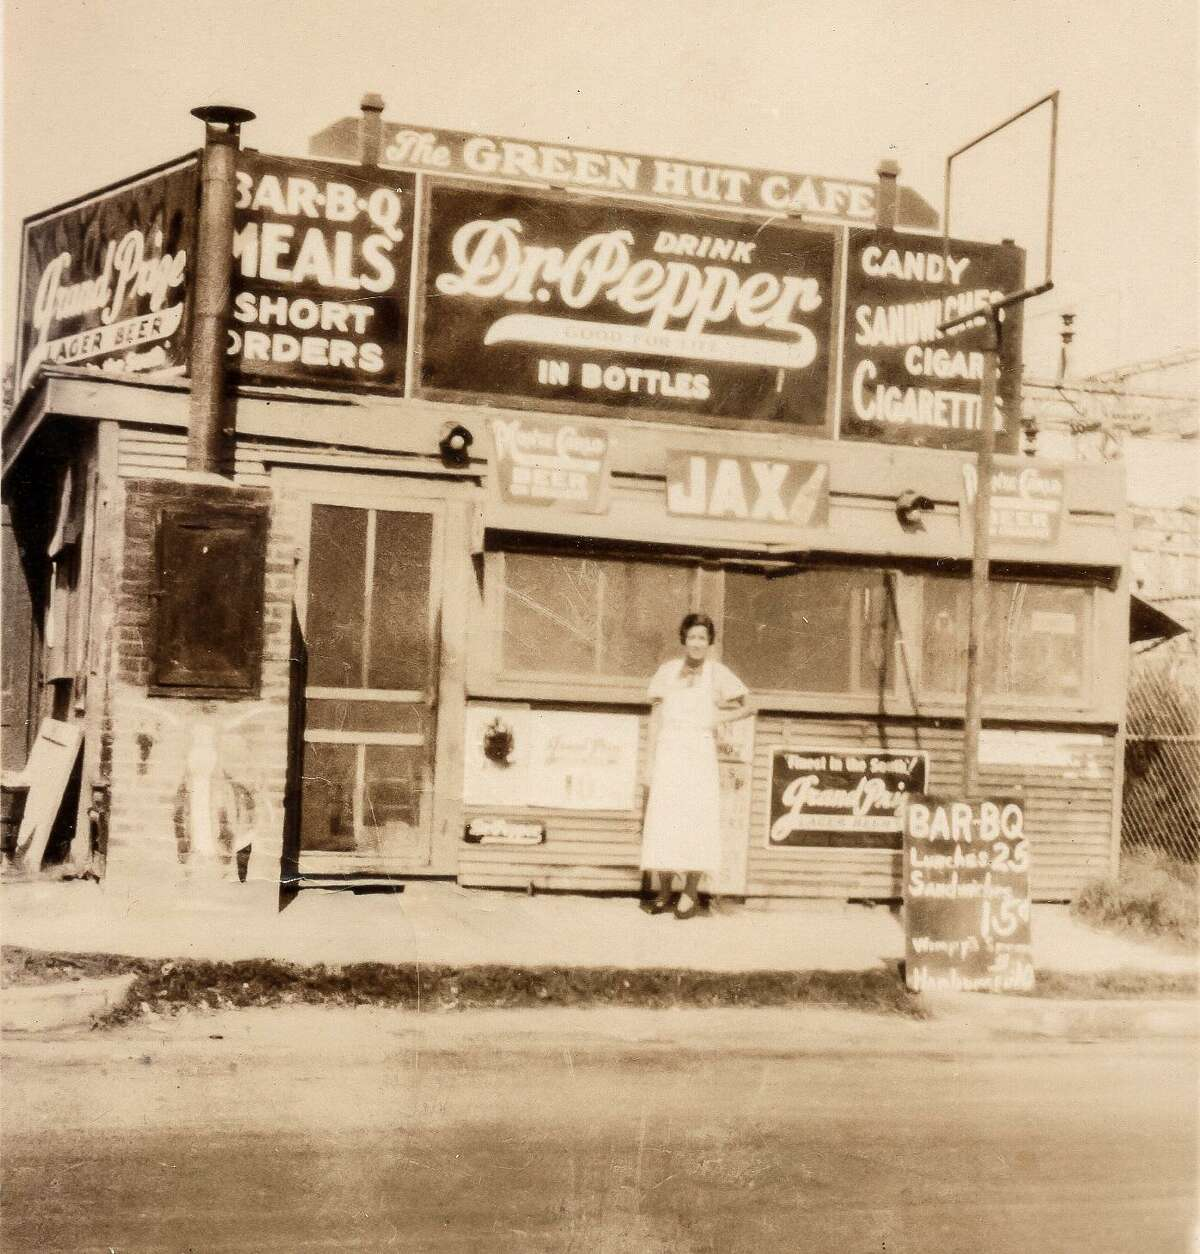 Leona Ginn stands near a vertical brick smoker on the front of The Green Hut Café on Quitman Street in 1934.